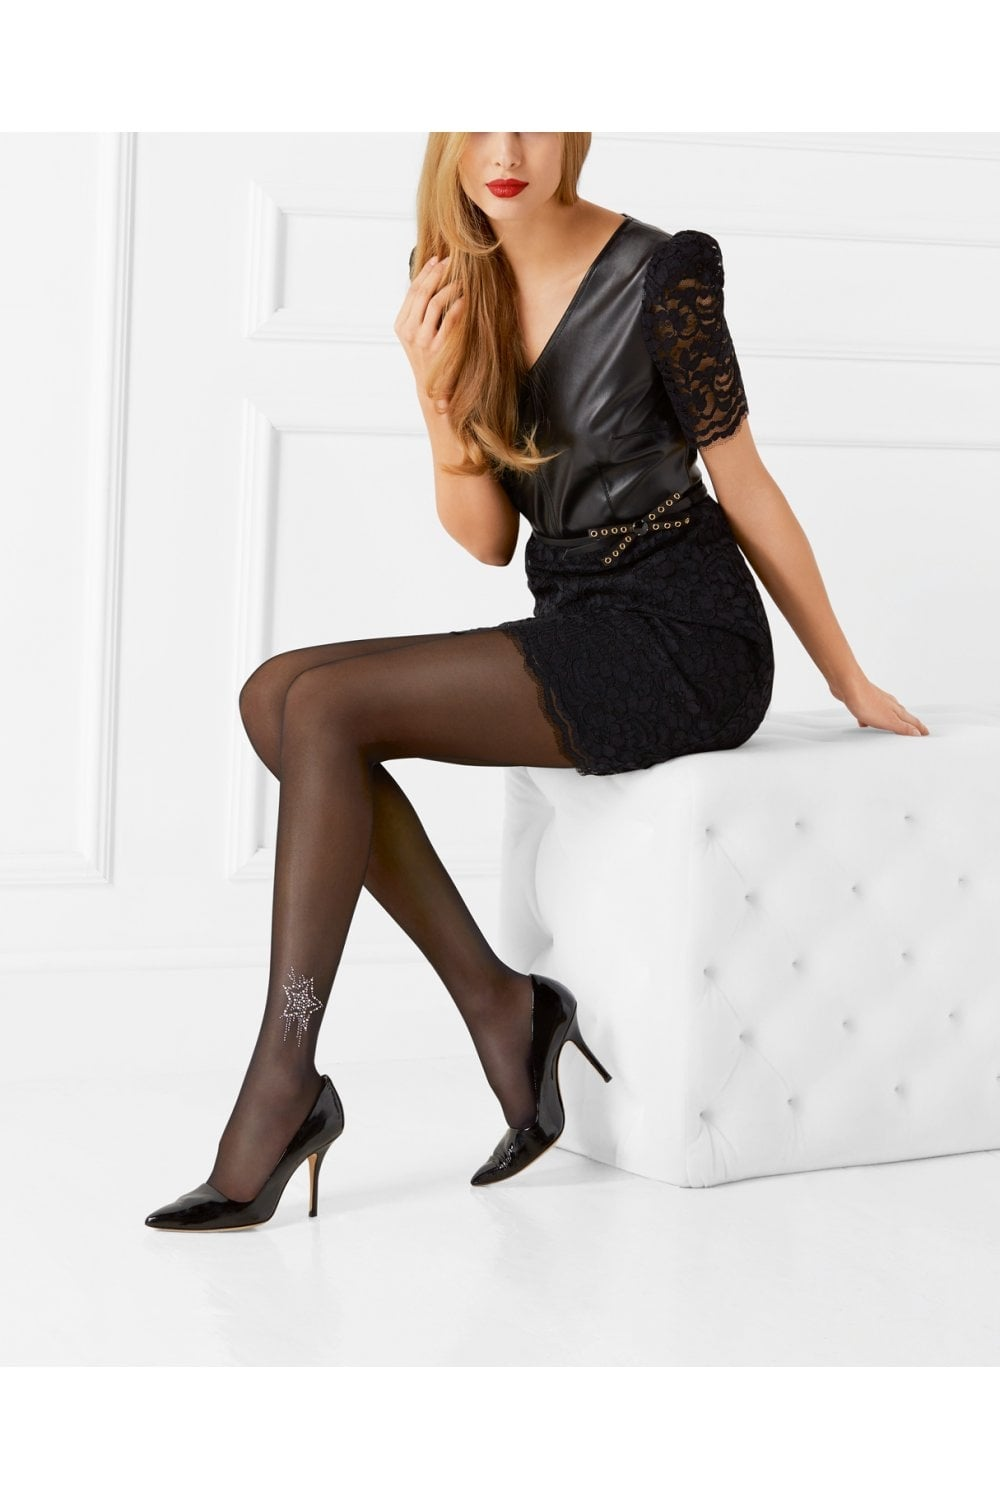 dbf69d0805a Petillant Fashion Tights by Le Bourget